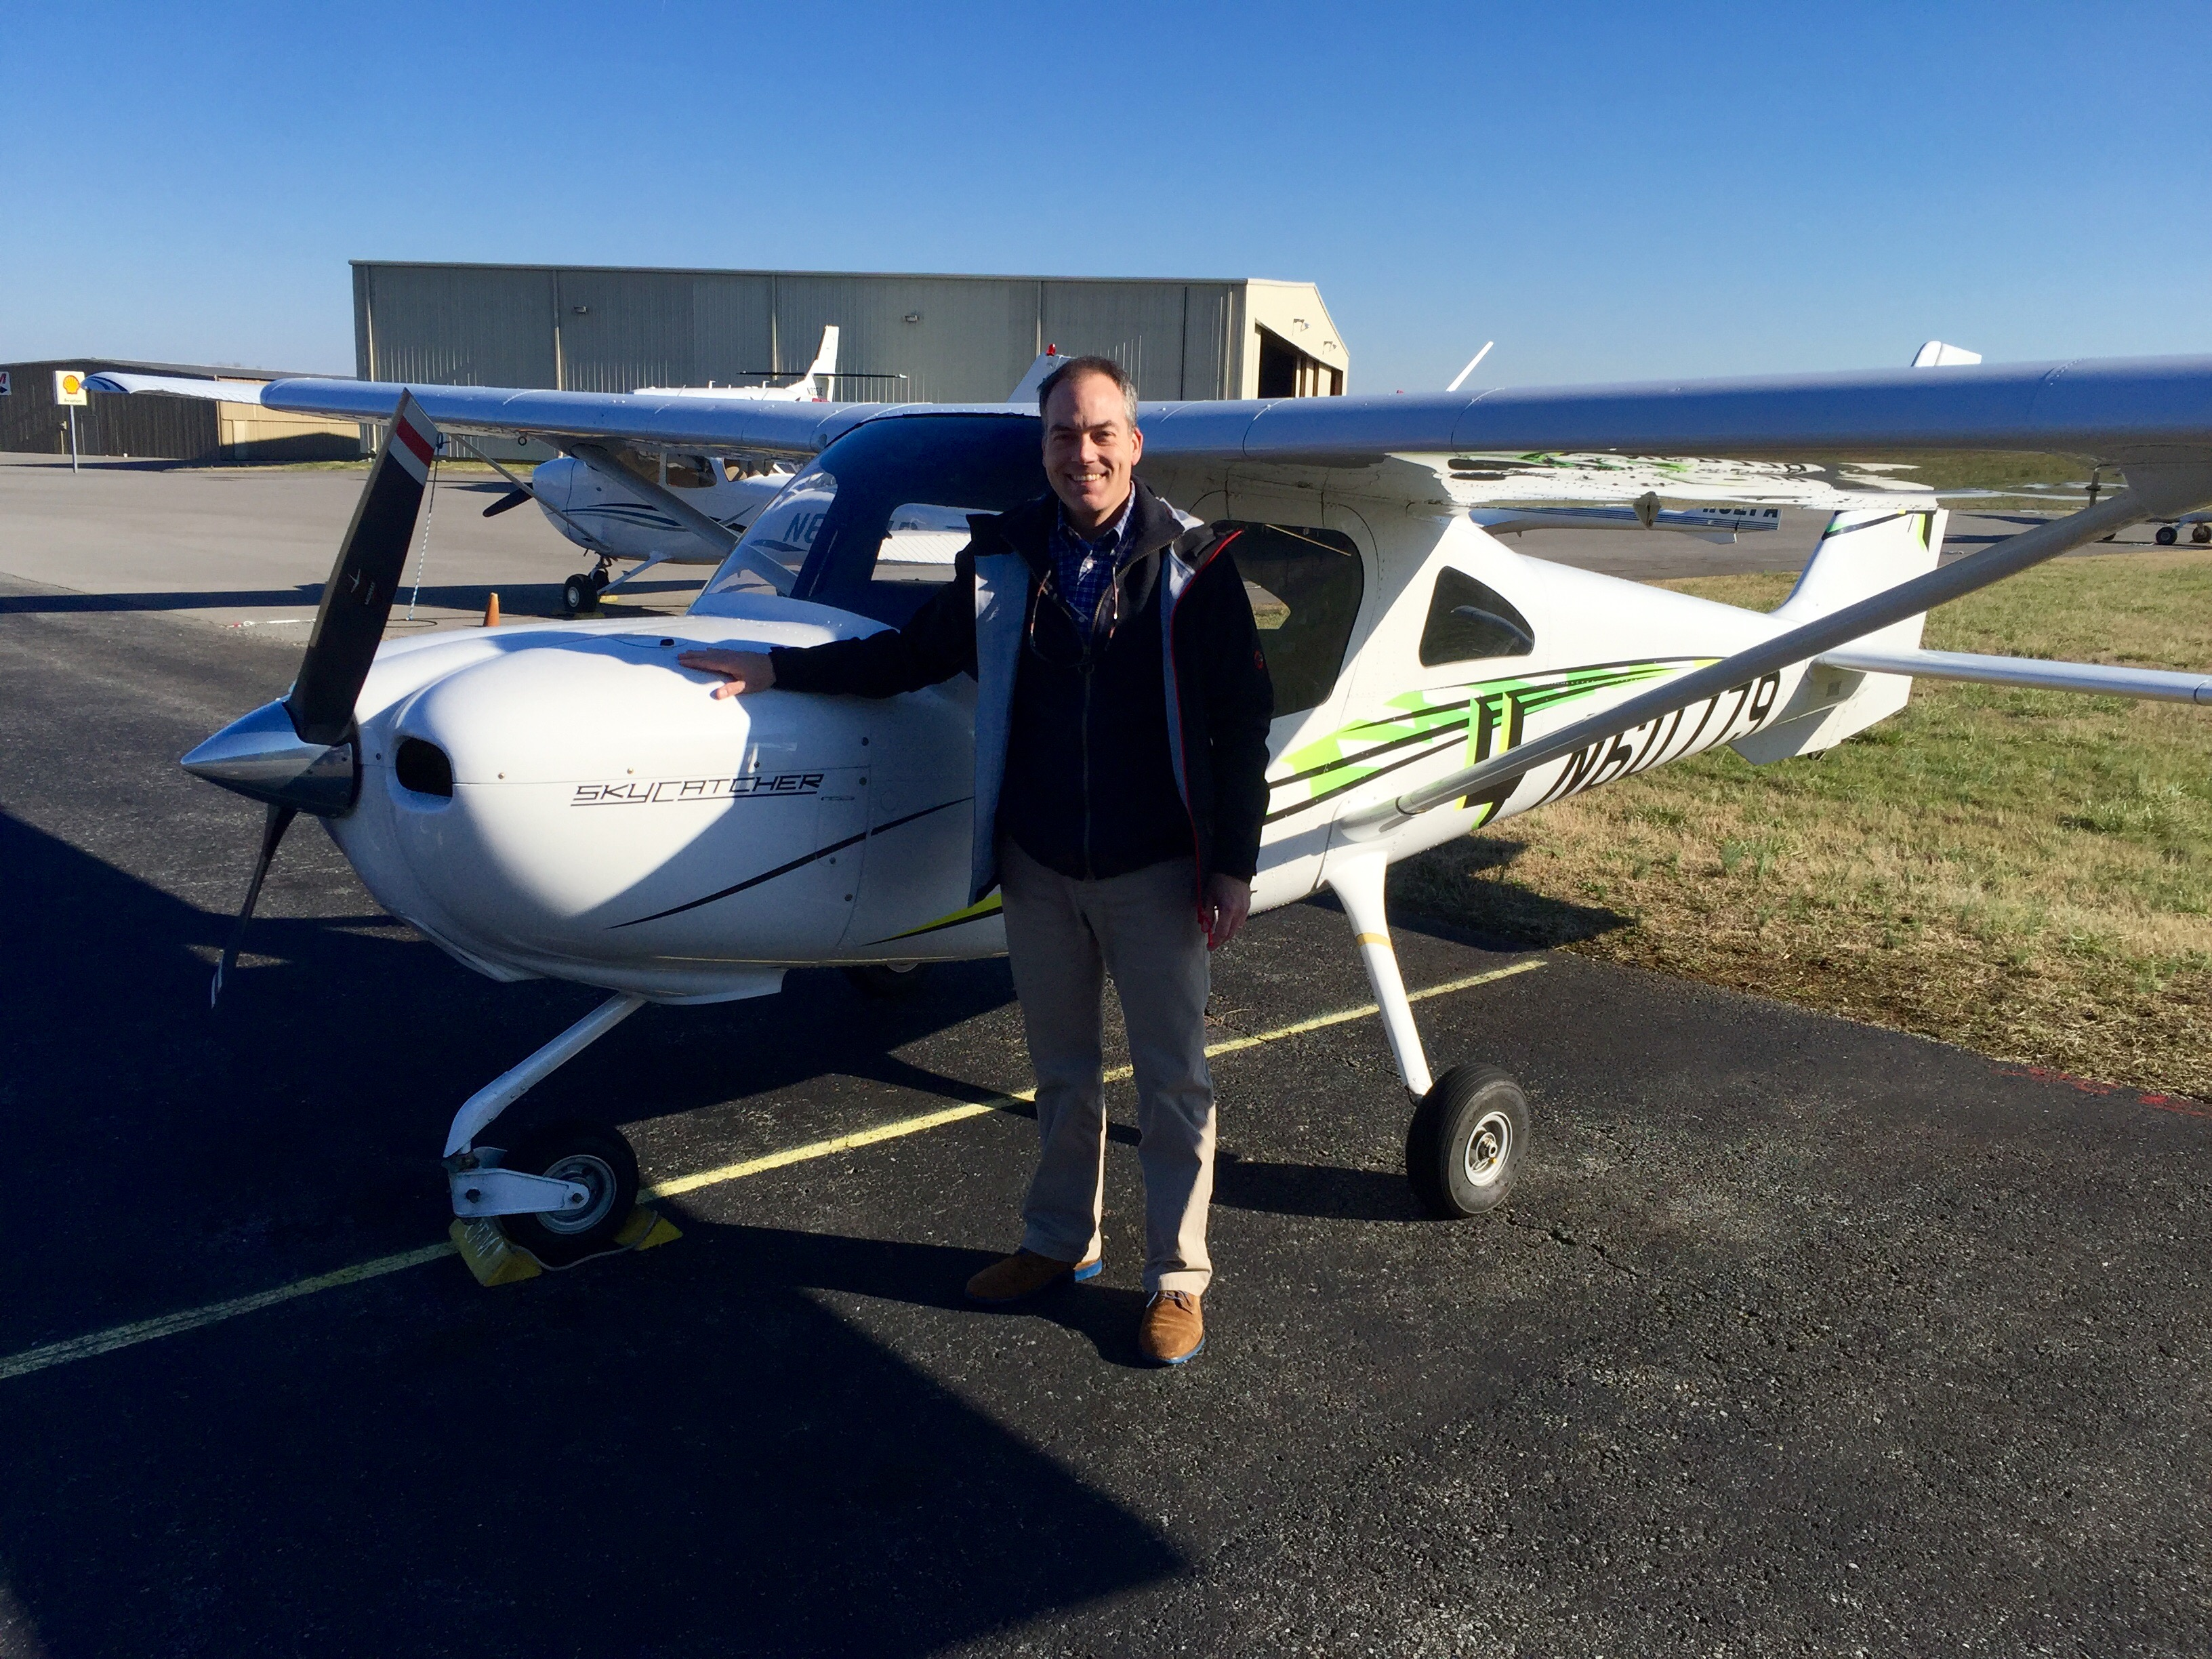 Congratulations to Andrew Collignon earning his Private Pilot Certificate!